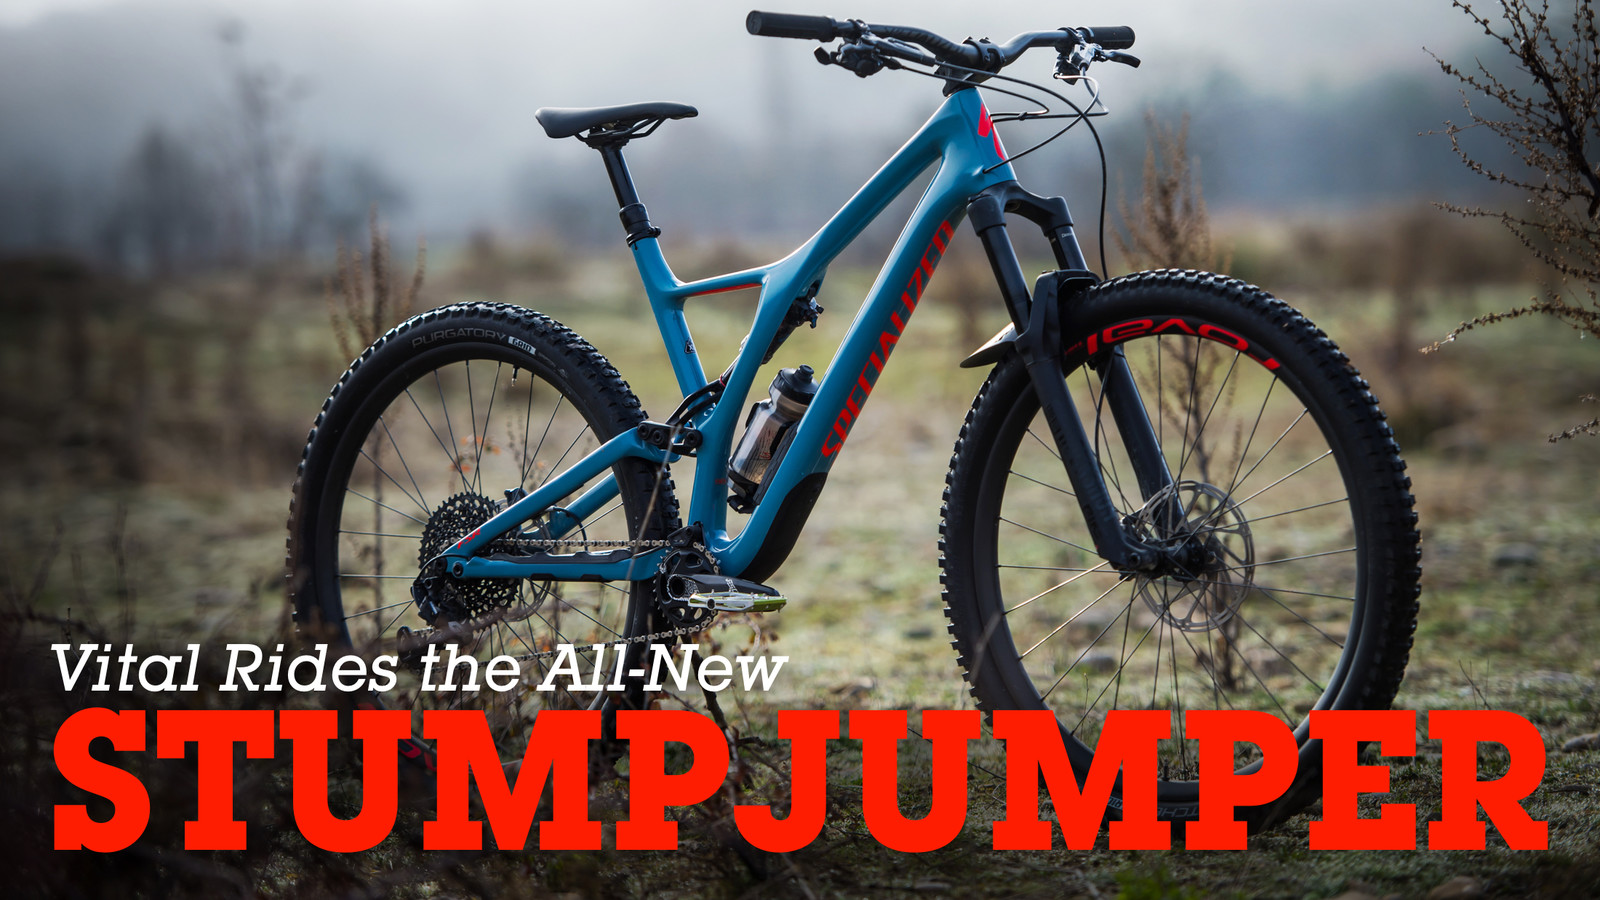 Vital Rides the All-New 2018 Specialized Stumpjumper